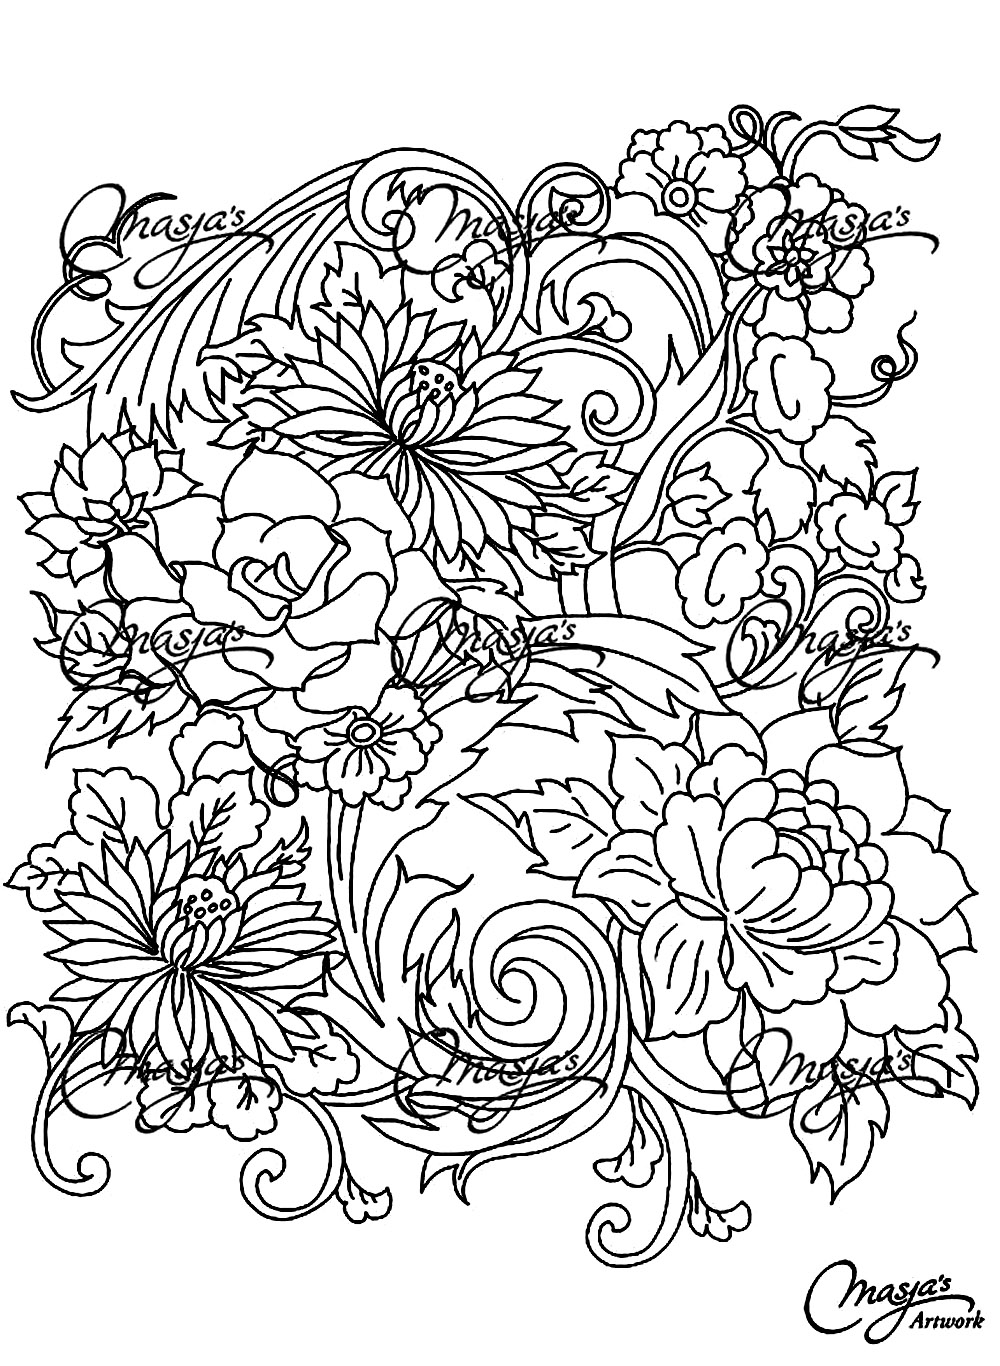 Drawing flower - Flowers Adult Coloring Pages - Page 3